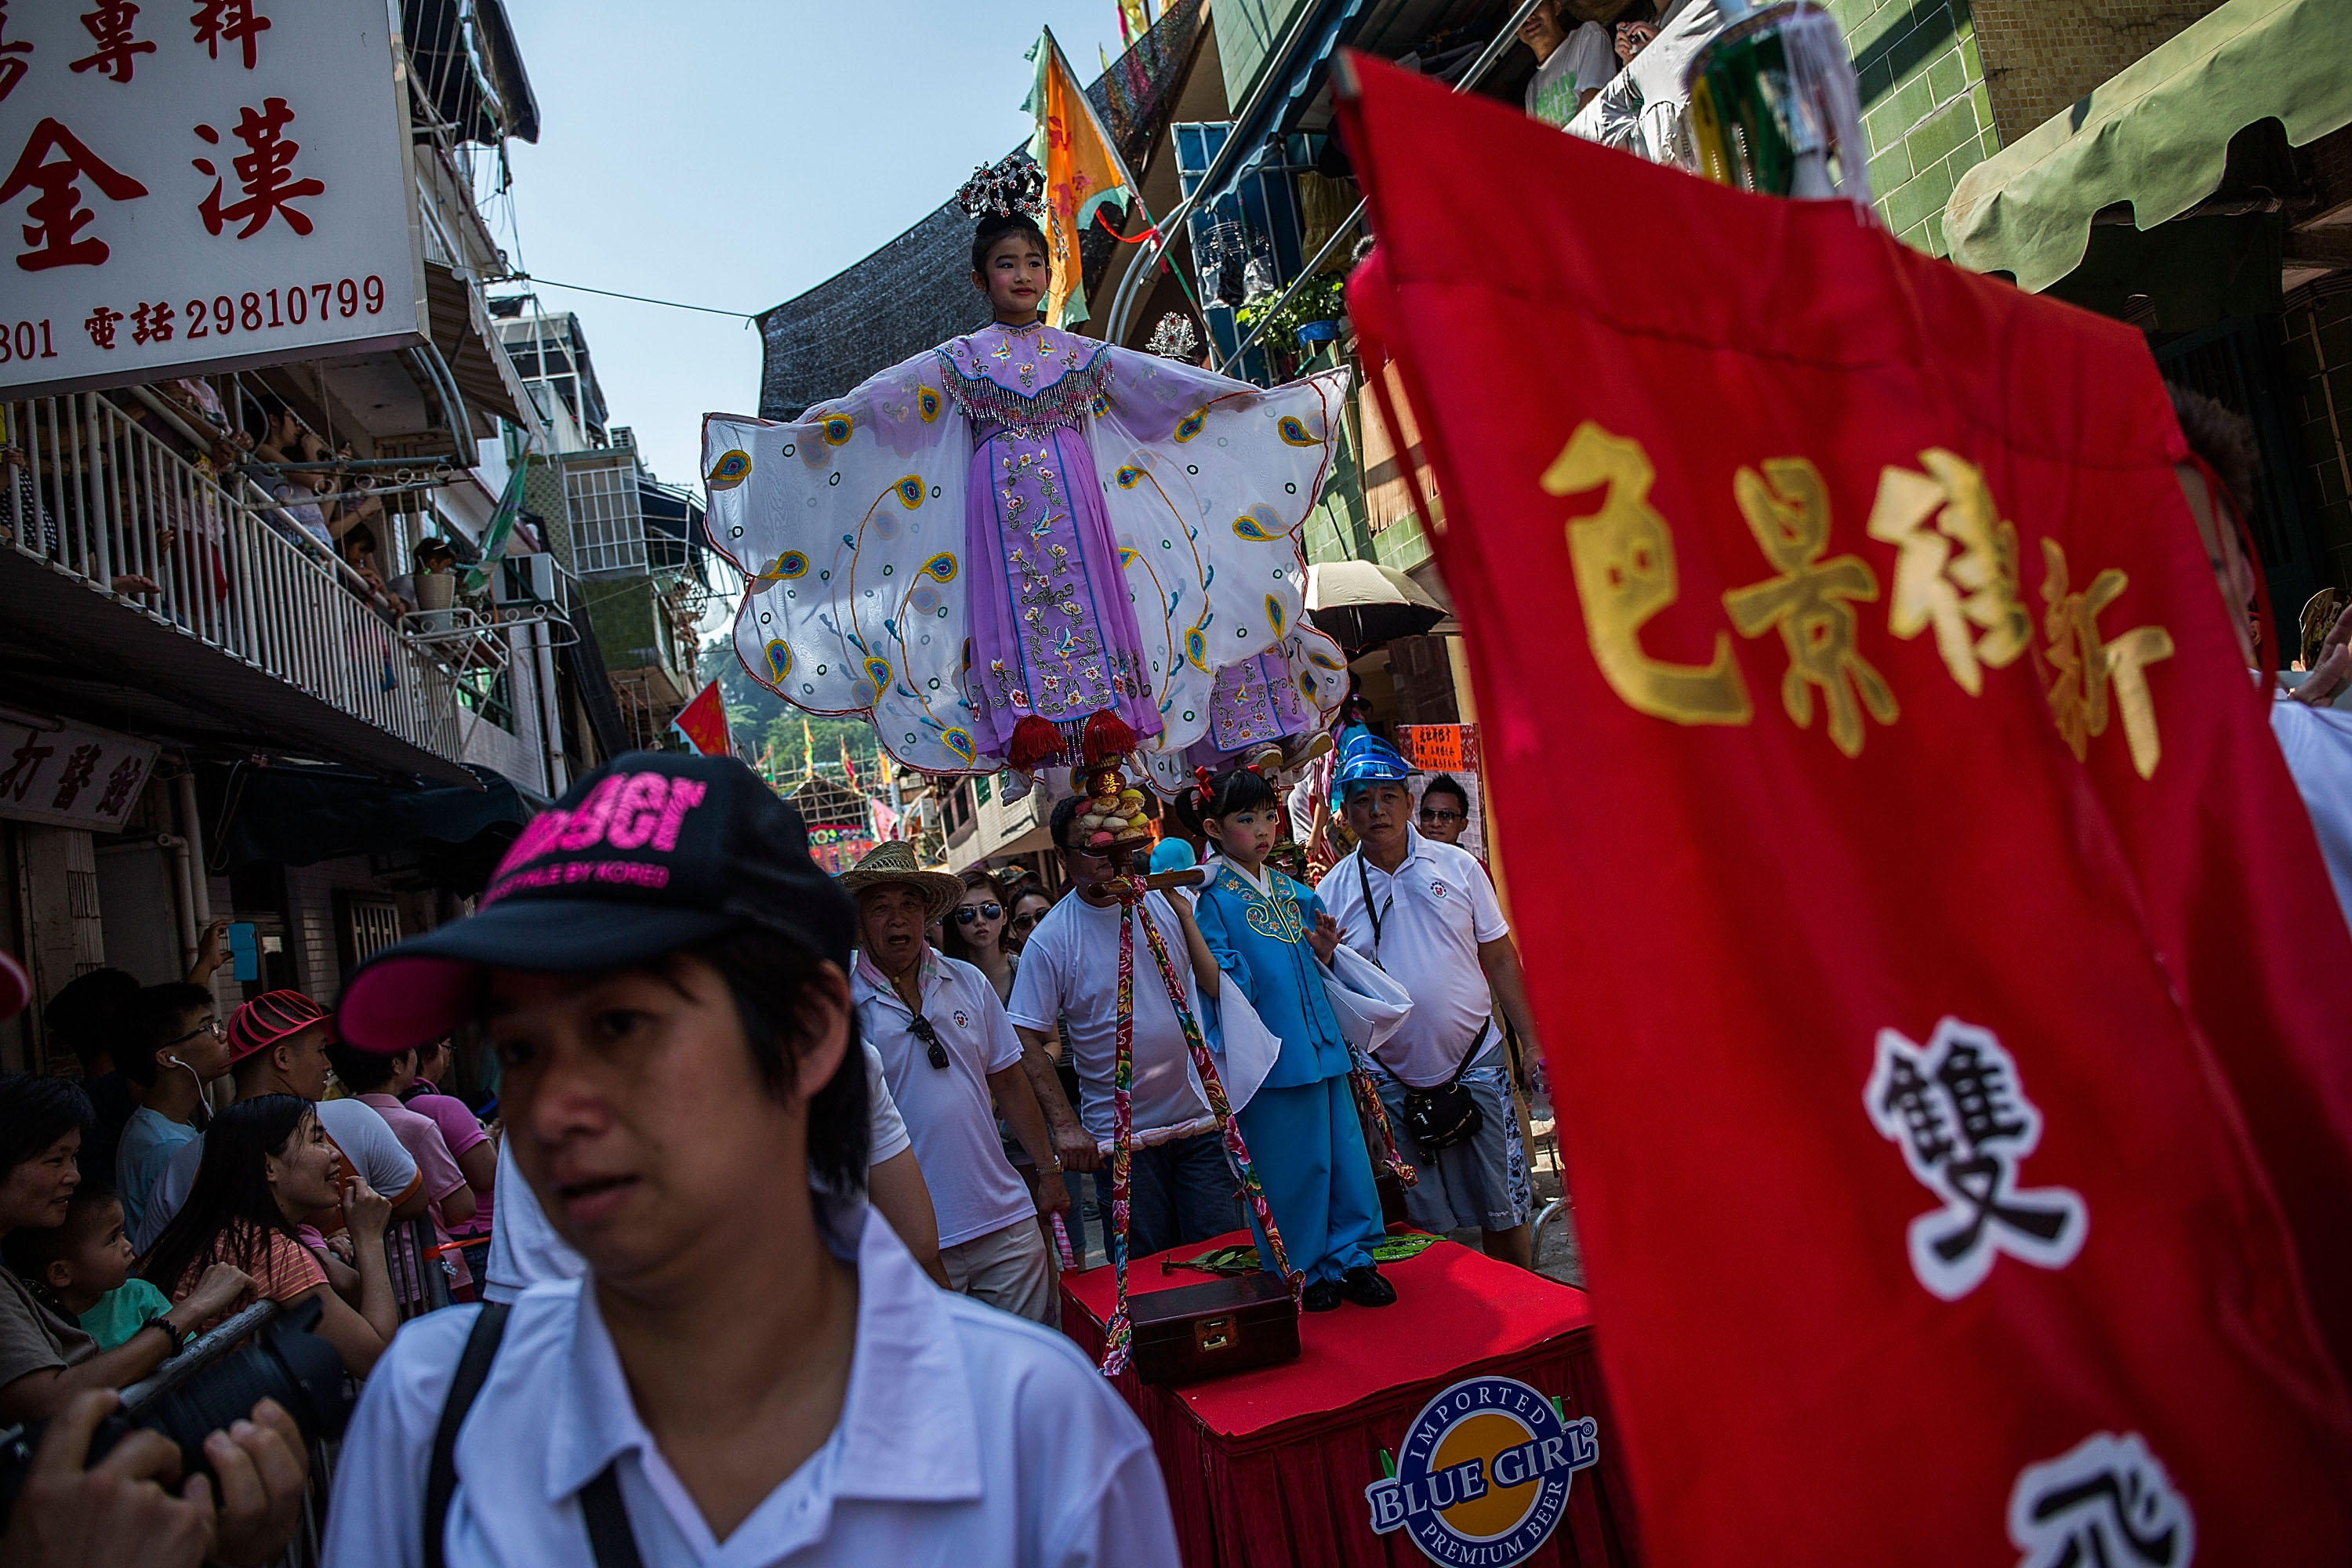 HONG KONG - MAY 25:  Children parade on a float during the Bun Festival on May 25, 2015 in Hong Kong, Hong Kong. One of Hong Kong's most colourful cultural celebration event, Cheung Chau Bun Festival, will be staged on 25 May 2015 (Monday) till 26 May 2015 midnight (Tuesday). This festival has over 100 years of history. Every year, thousands of people descend upon the tiny island for The Piu Sik (Floating Colours) Parade, Lucky Bun (Ping On Bun) and The Bun Scrambling Competition, the ancient custom during the festival. The tradition has been passed down for generations. To ensure the tradition keeps passing on, every year, Cheung Chau Islanders fuse the new elements with the custom to draw the attention from the young. This year, 'K-Pop stars' will be featured by one of the Piu Sik parade teams, the first-ever 'Ping On (Lucky) Macaron' with Chinese tea favour is invented, and more to be found out on the island.  (Photo by Lam Yik Fei/Getty Images)